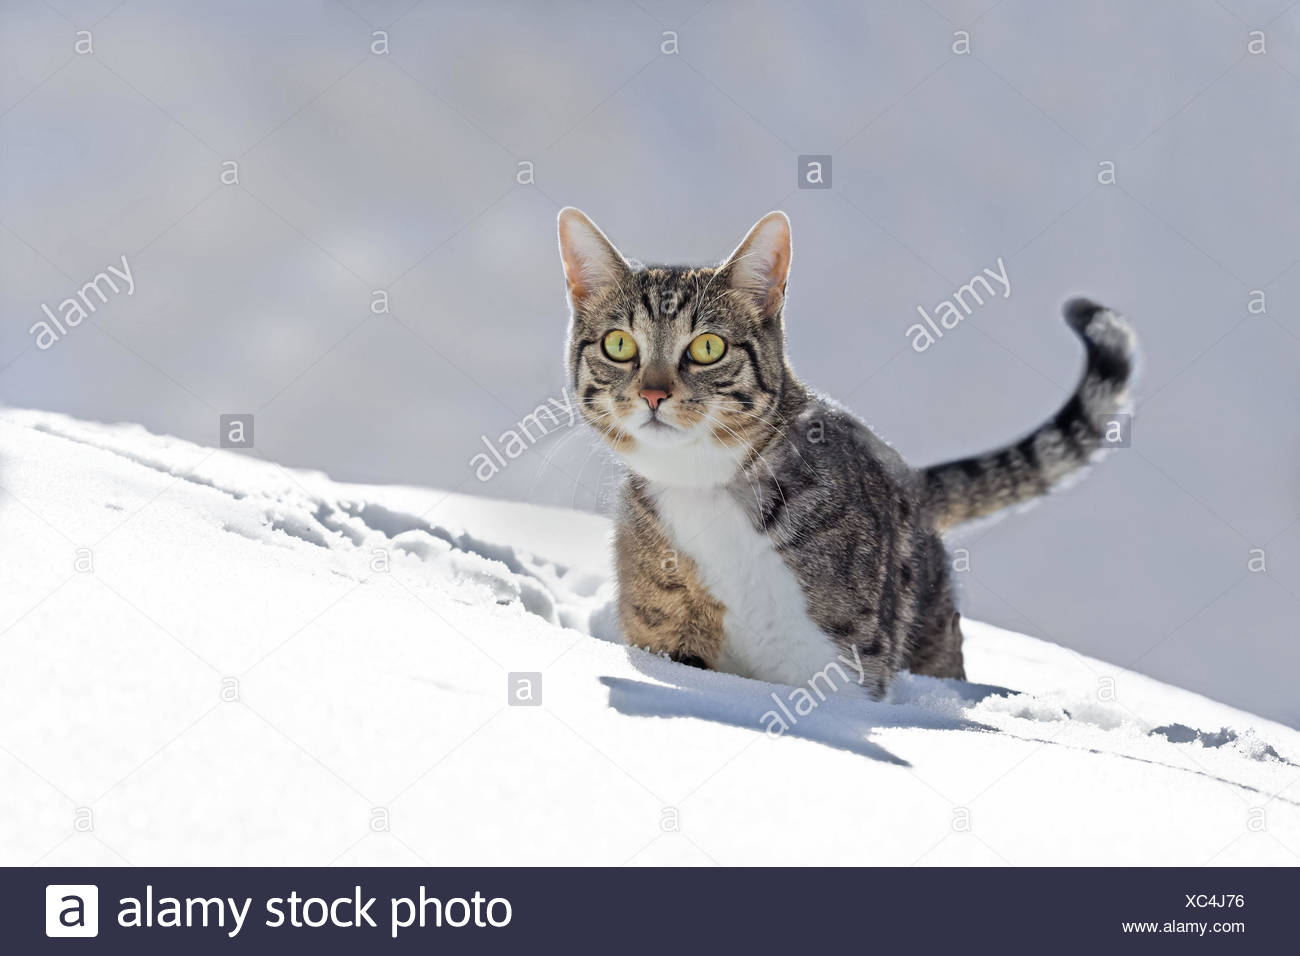 Cats, snow, run, play animal, pet, house cat, EKH, day release prisoner, one, striped, running into space, look view, carefully, curiosity, interest, snow-covered, wintry, winter, outside, deep snow, go, wade, head-on, - Stock Image